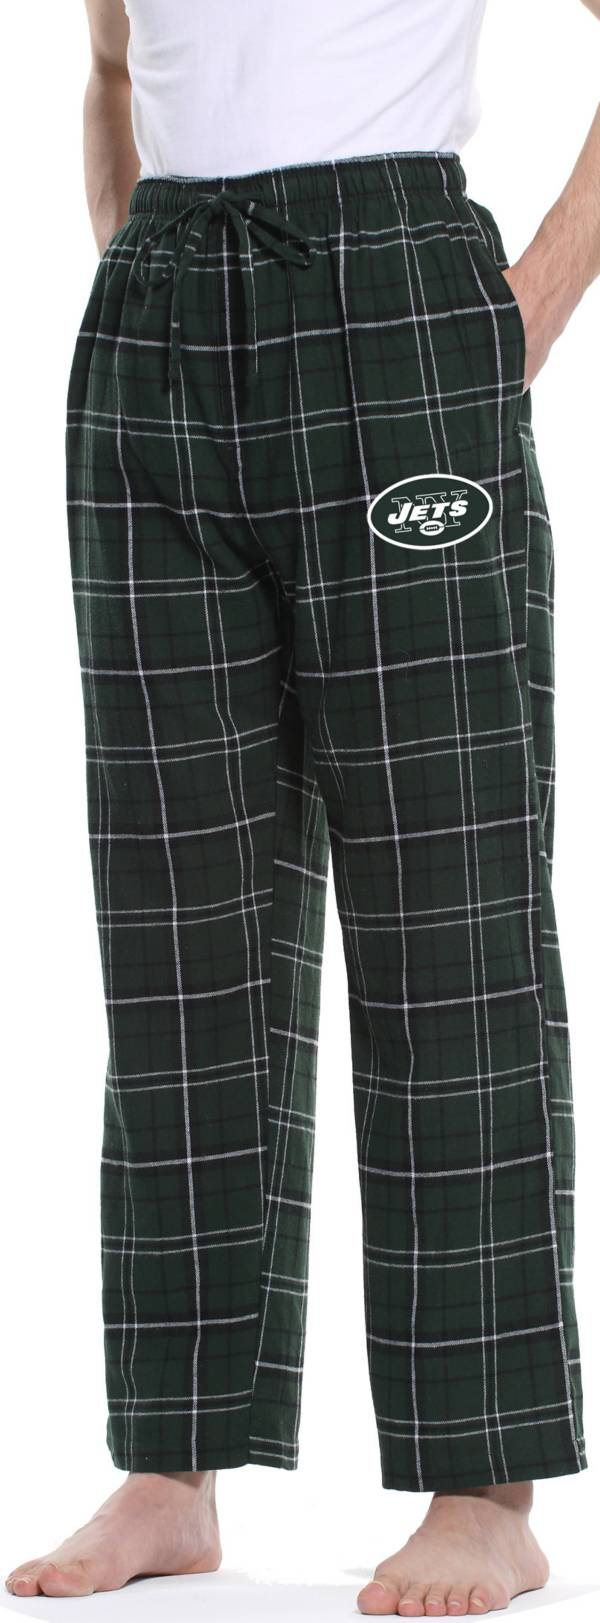 Concepts Sport Men's New York Jets Ultimate Flannel Pants product image